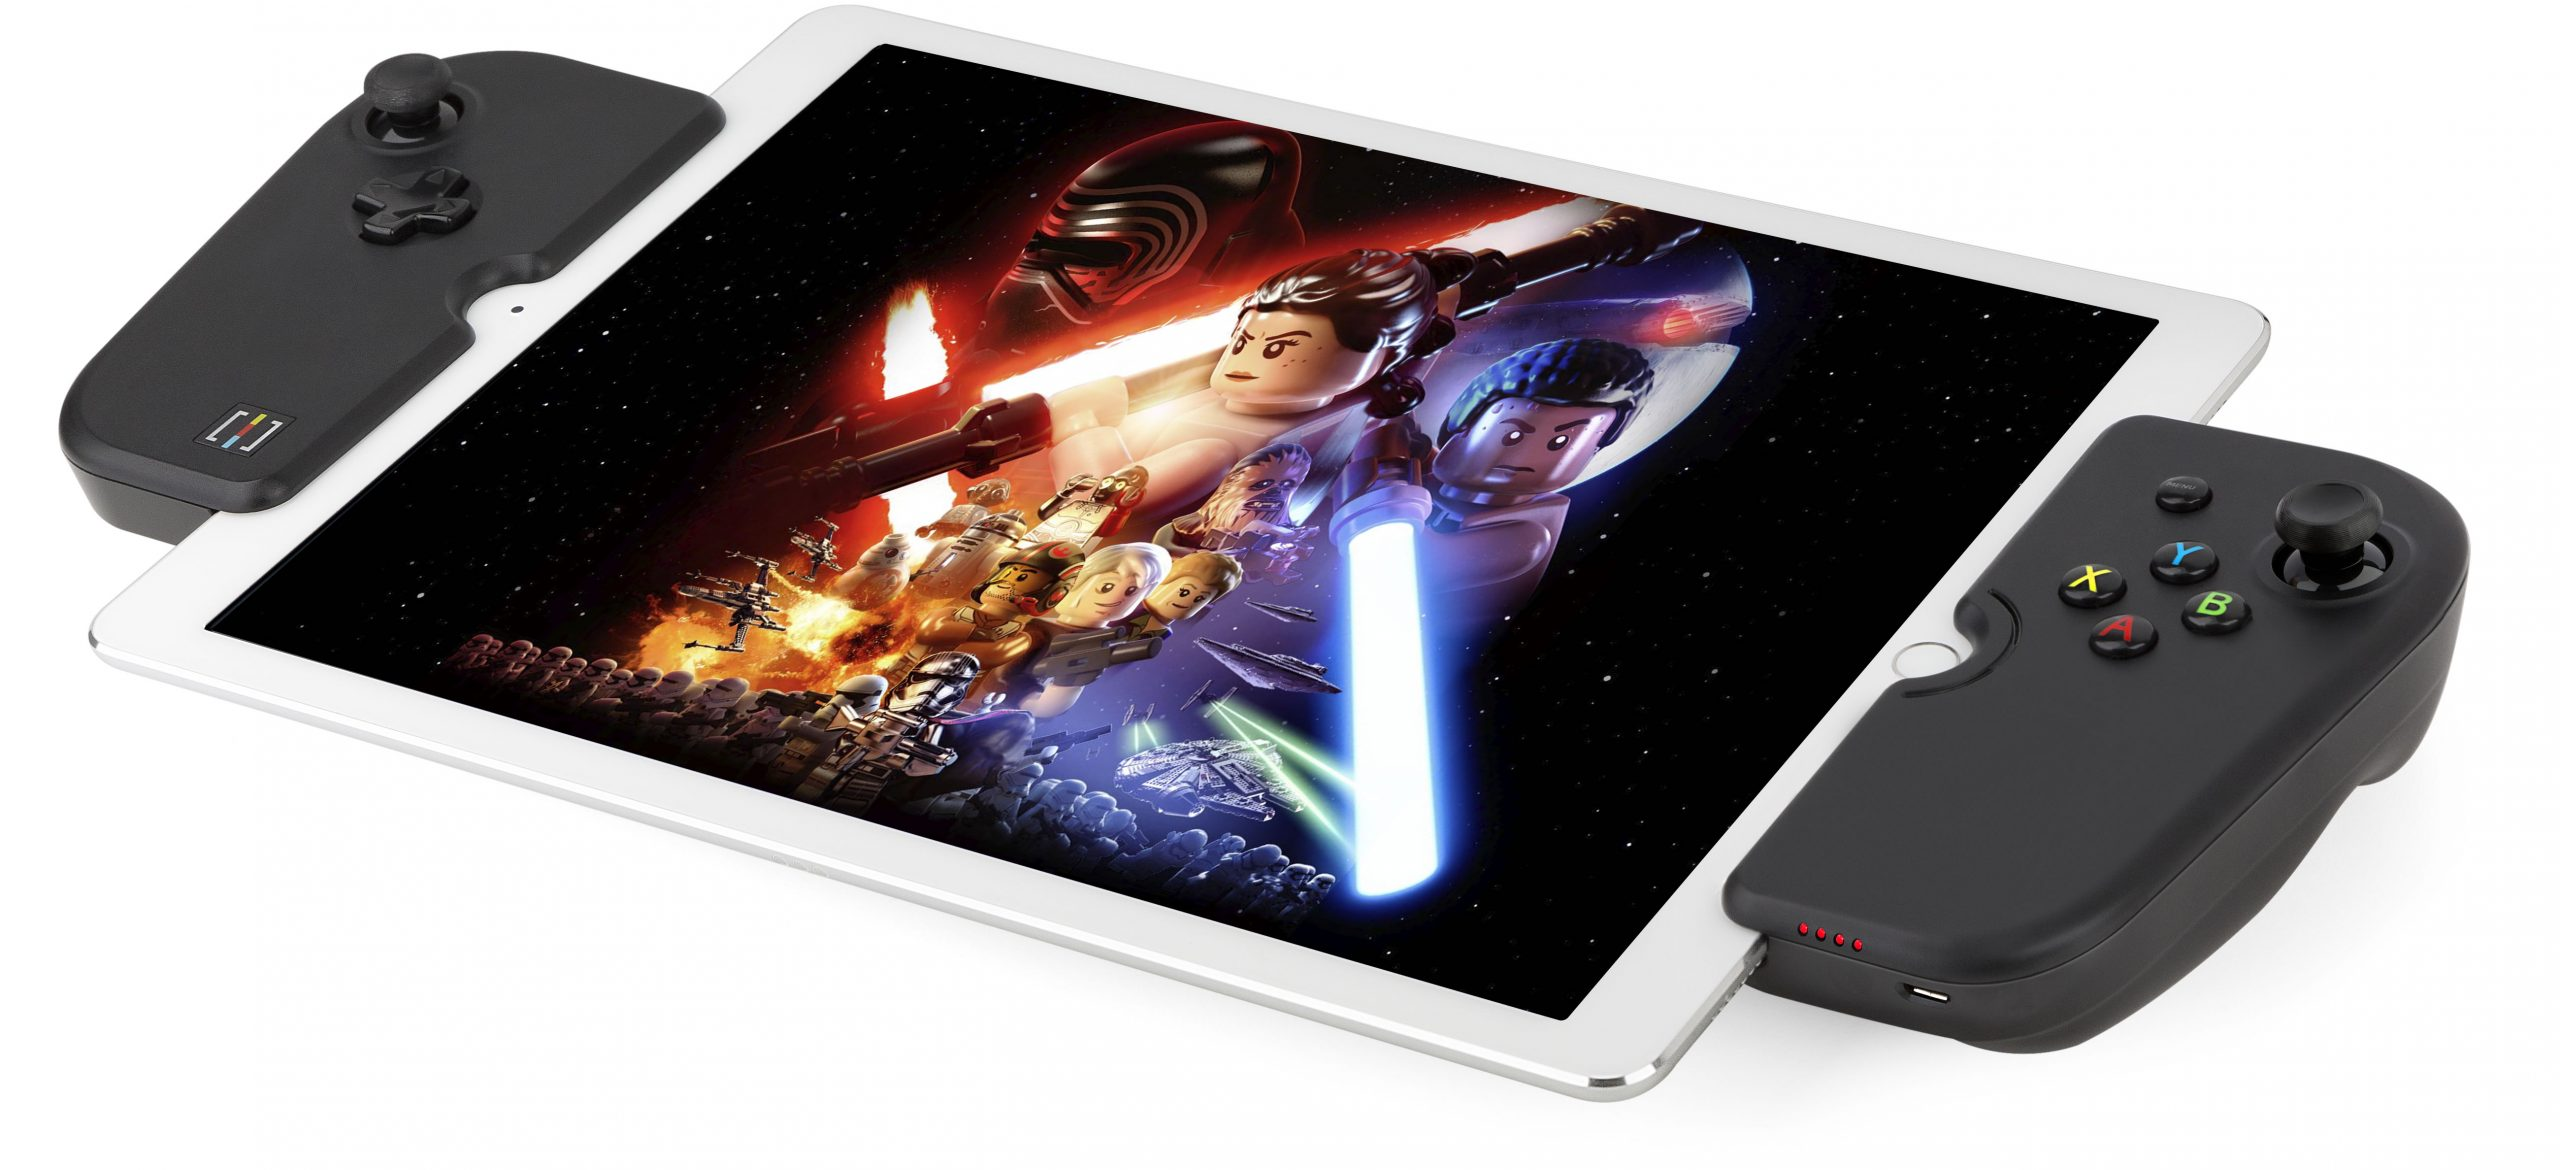 Gamevice for iPad Pro 12.9-inch